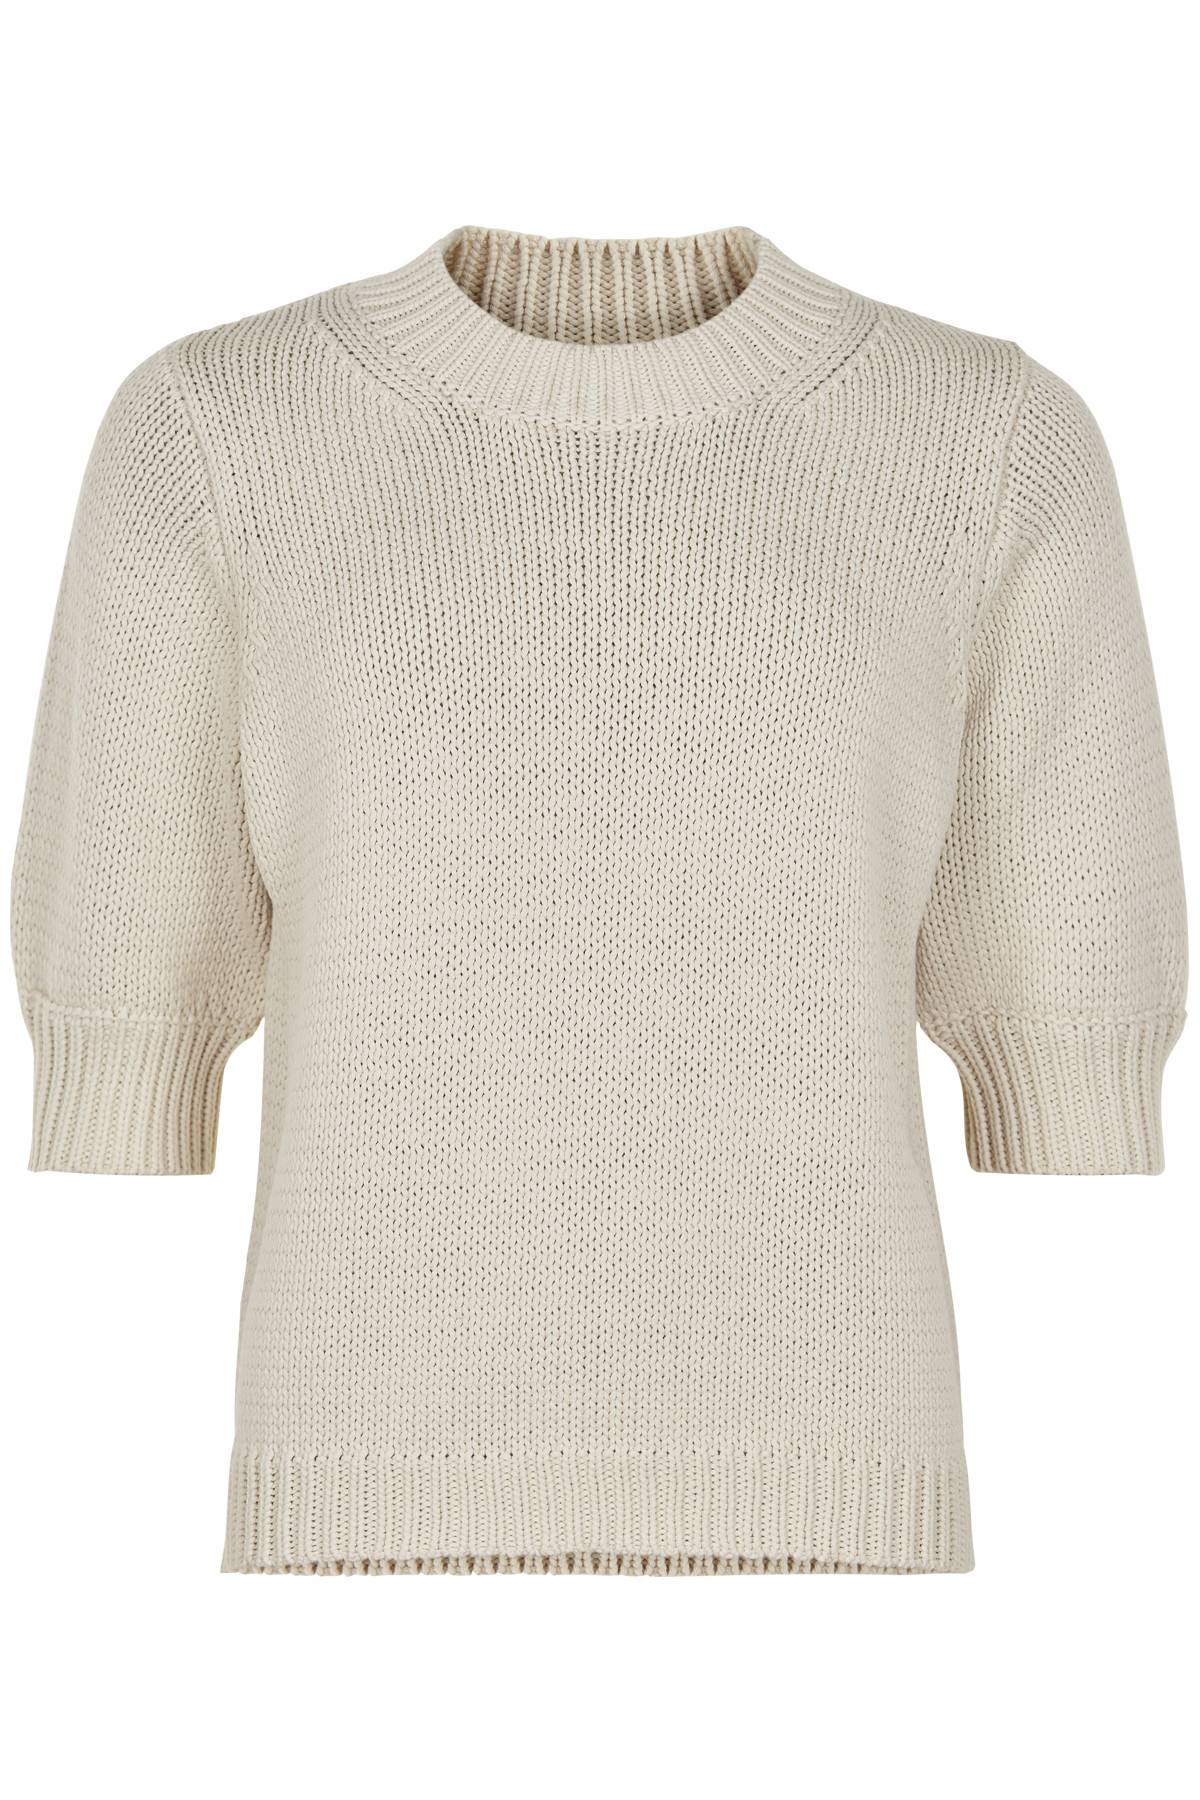 Image of   AND LESS ALBENA PULLOVER 5220205 9504 (Birch, M)